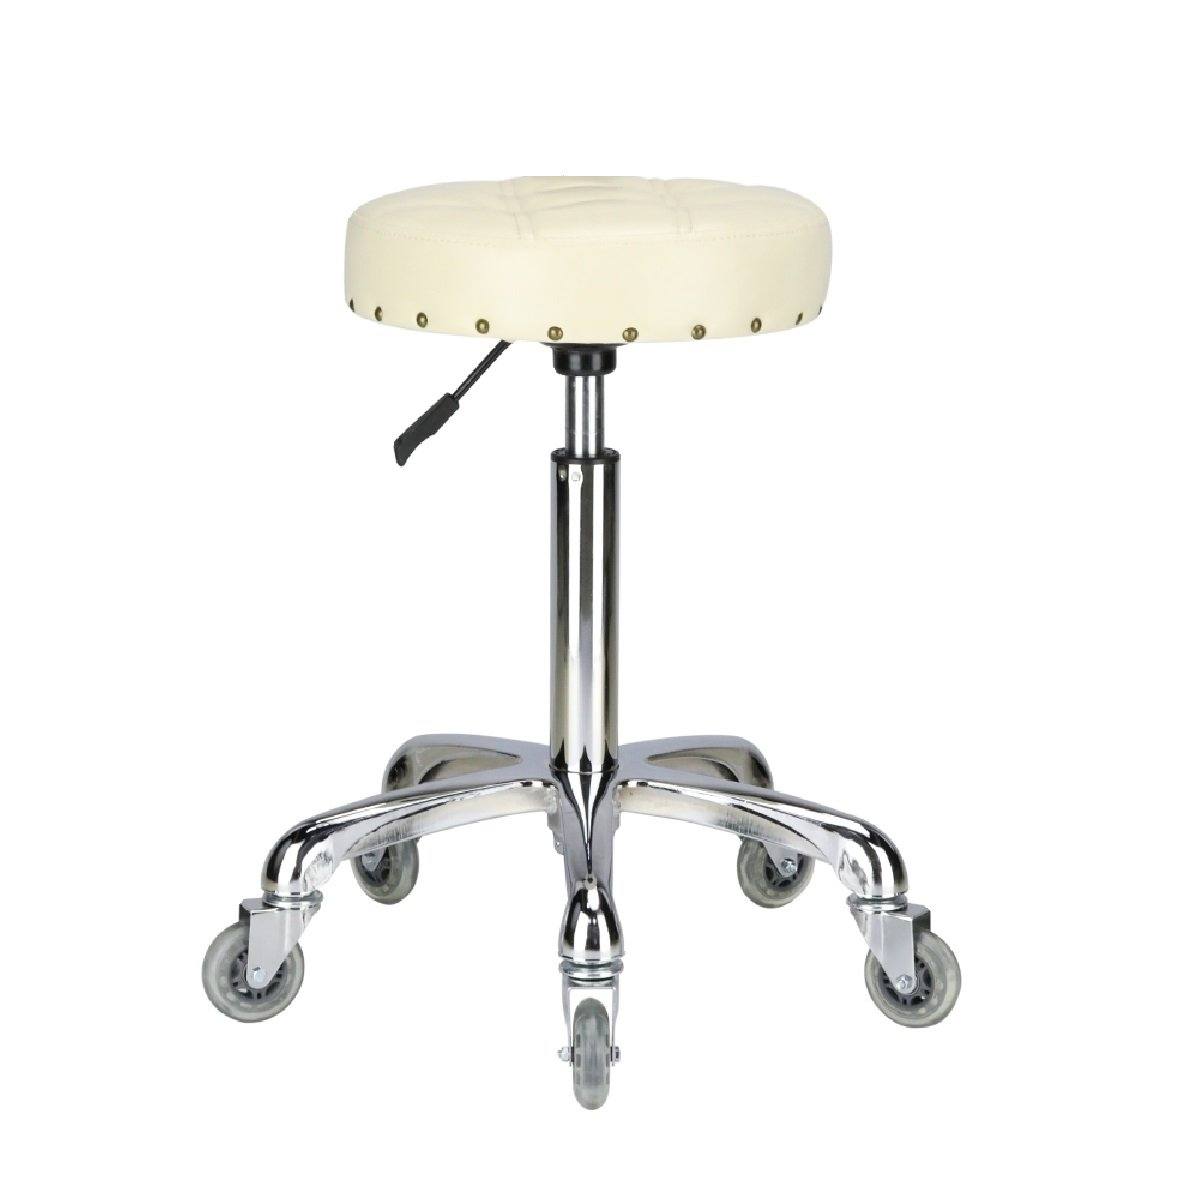 Karrie Swivel Stool Chair Adjustable height,Heavy Duty Hydraulic Rolling Metal Stool for Kitchen,Salon,Bar,Office,Massage (Off-white) by KARRIE (Image #1)